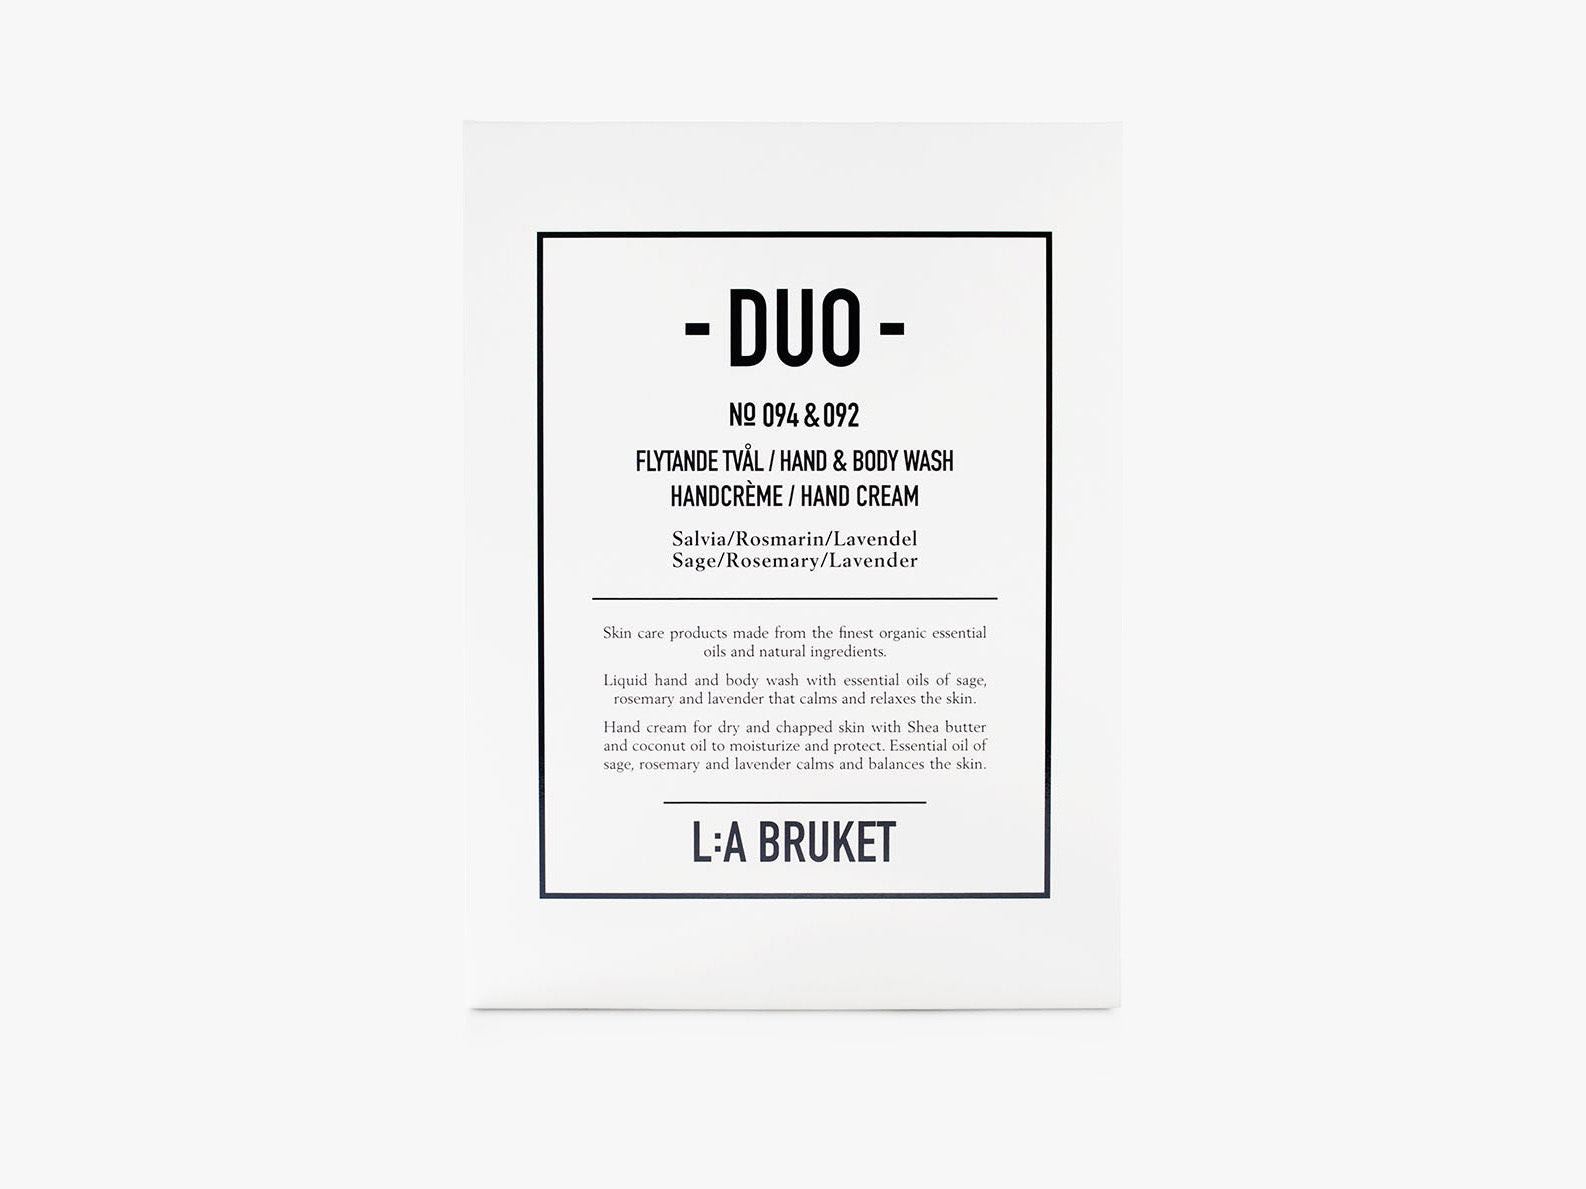 Duo-kit Liquid Soap Hand Cream Sage/Rosemary/Lavender fra L:A Bruket